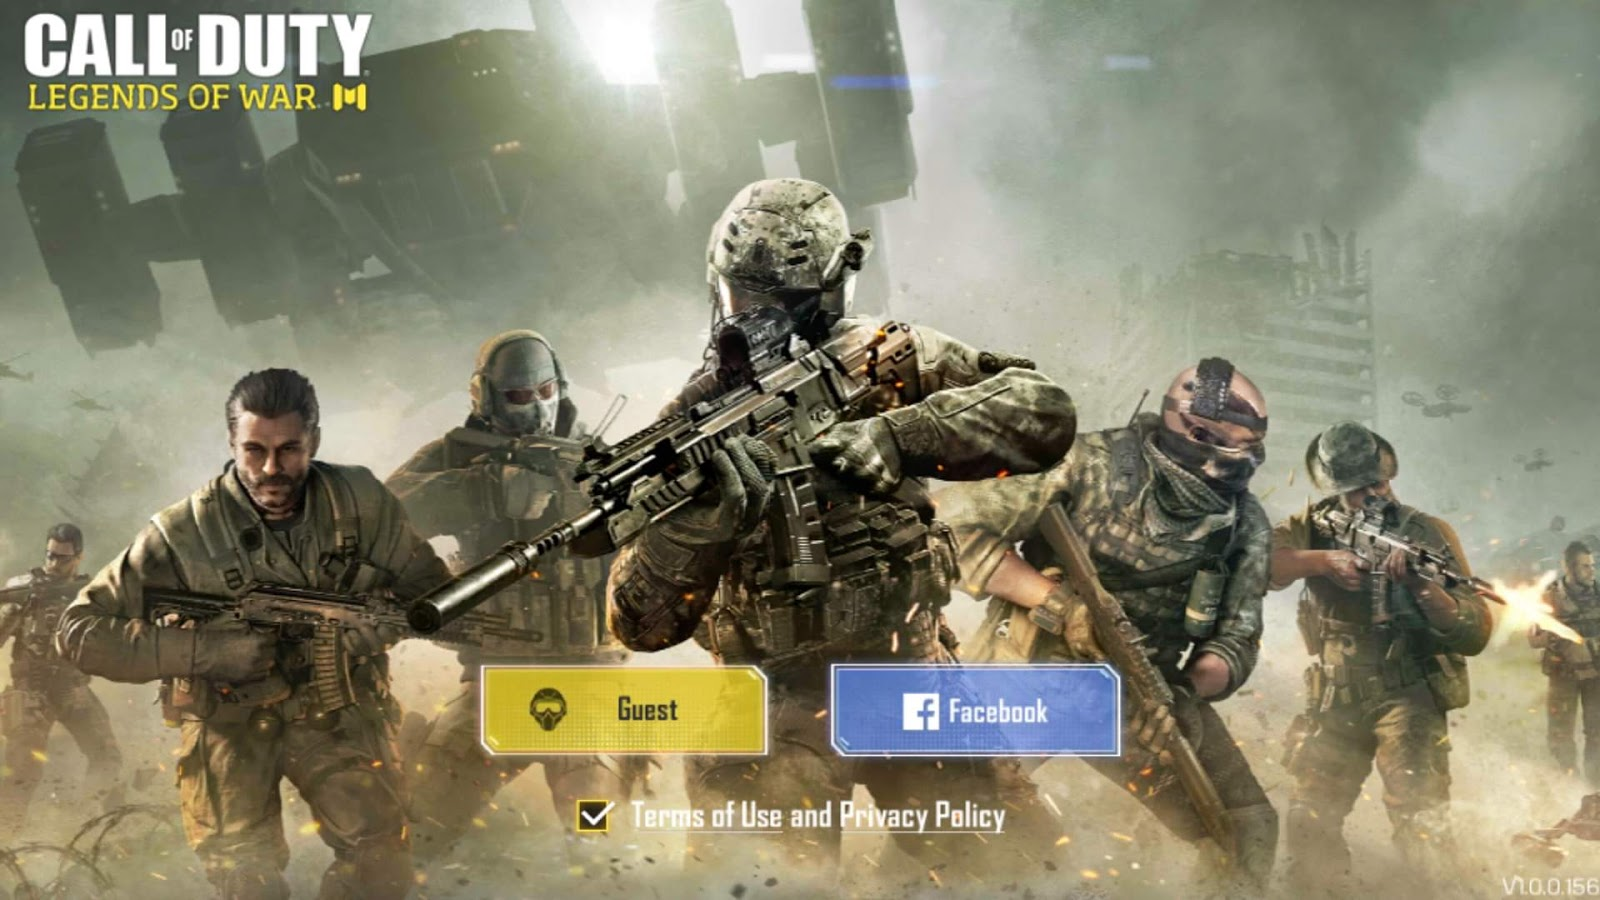 Download Call of Duty Mobile: Legends of War (APK+OBB) (Update 23/02/2019)